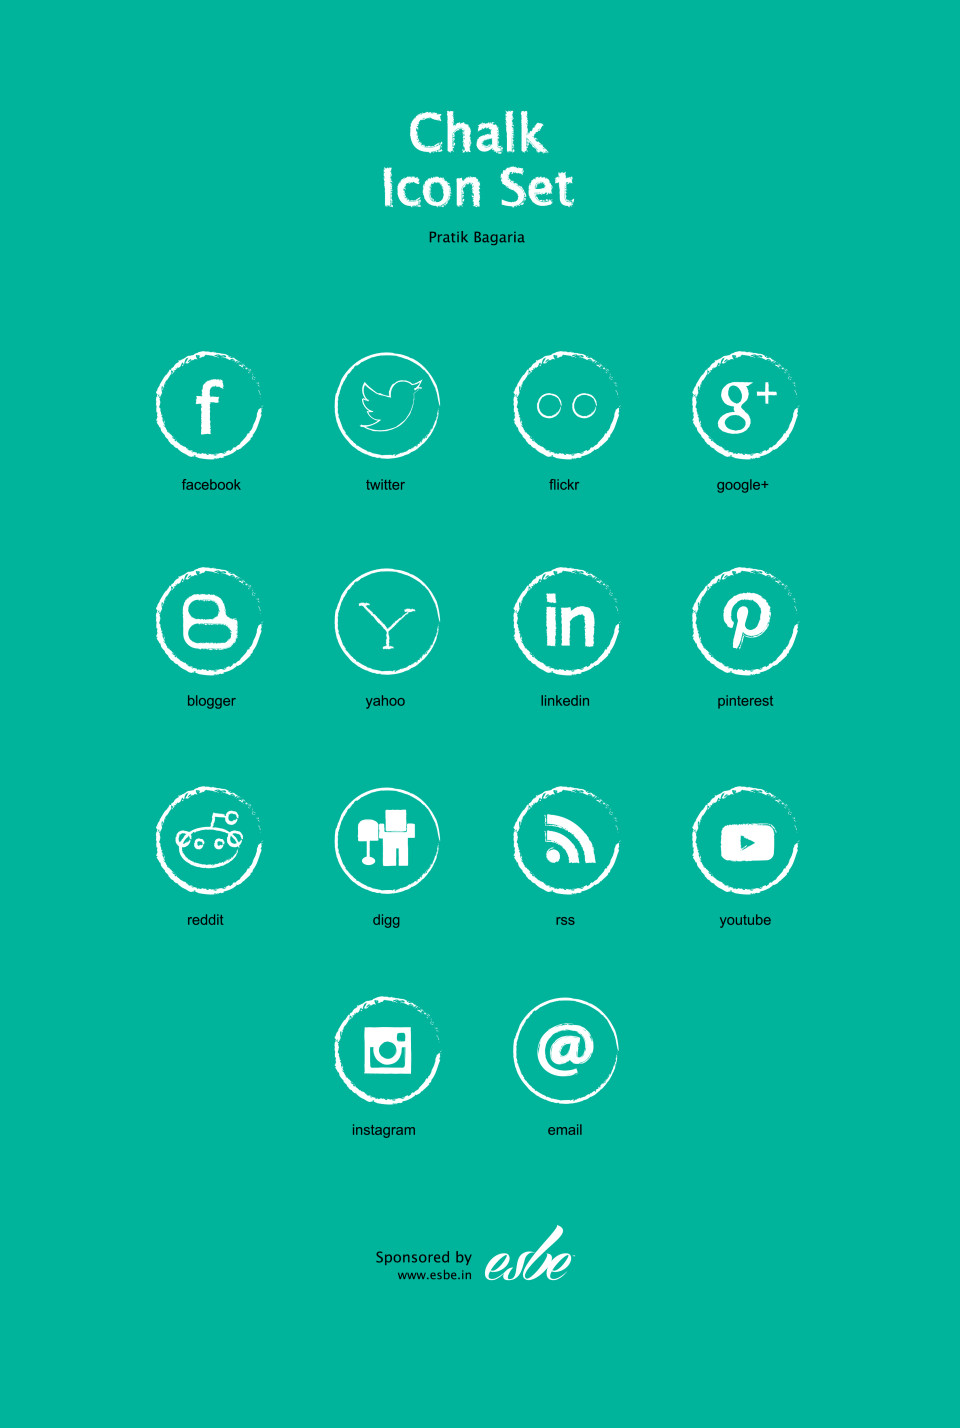 Chalk Social Media Icon Set (FREE)